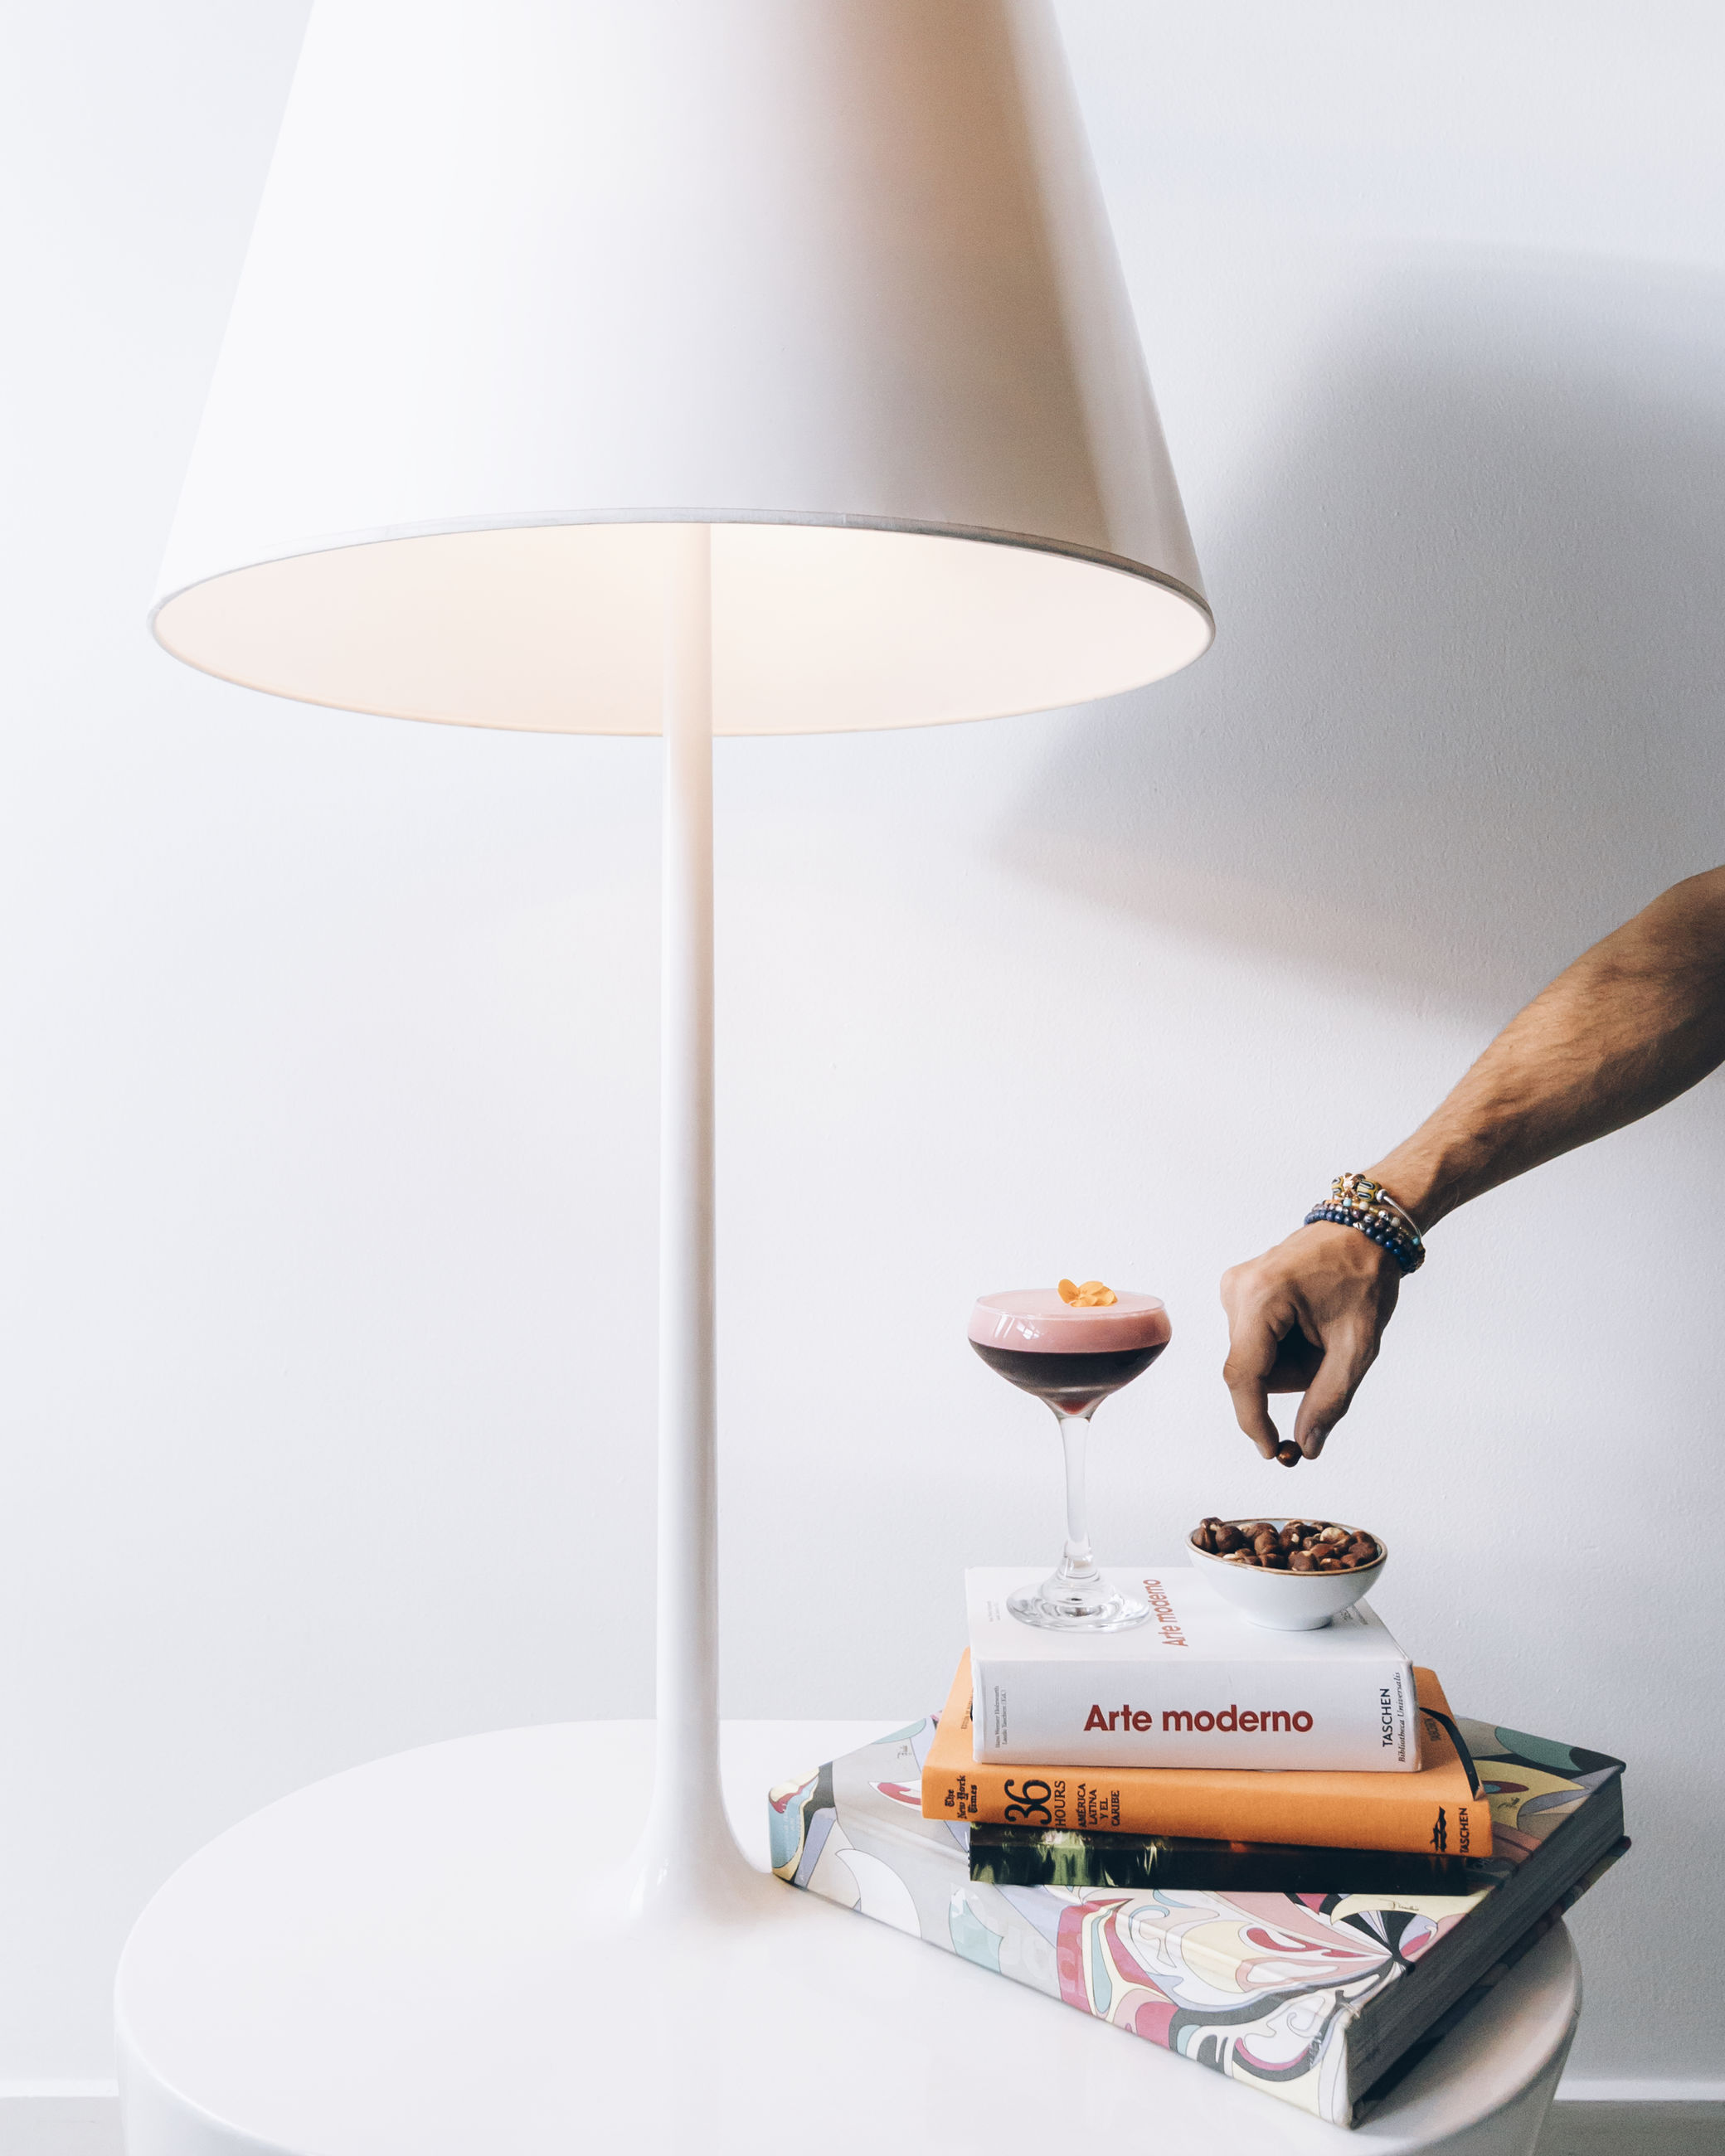 lamp, lampshade, electric lamp, lighting equipment, light fixture, indoors, lighting, table, furniture, home interior, food and drink, domestic room, lifestyles, one person, adult, food, domestic life, drink